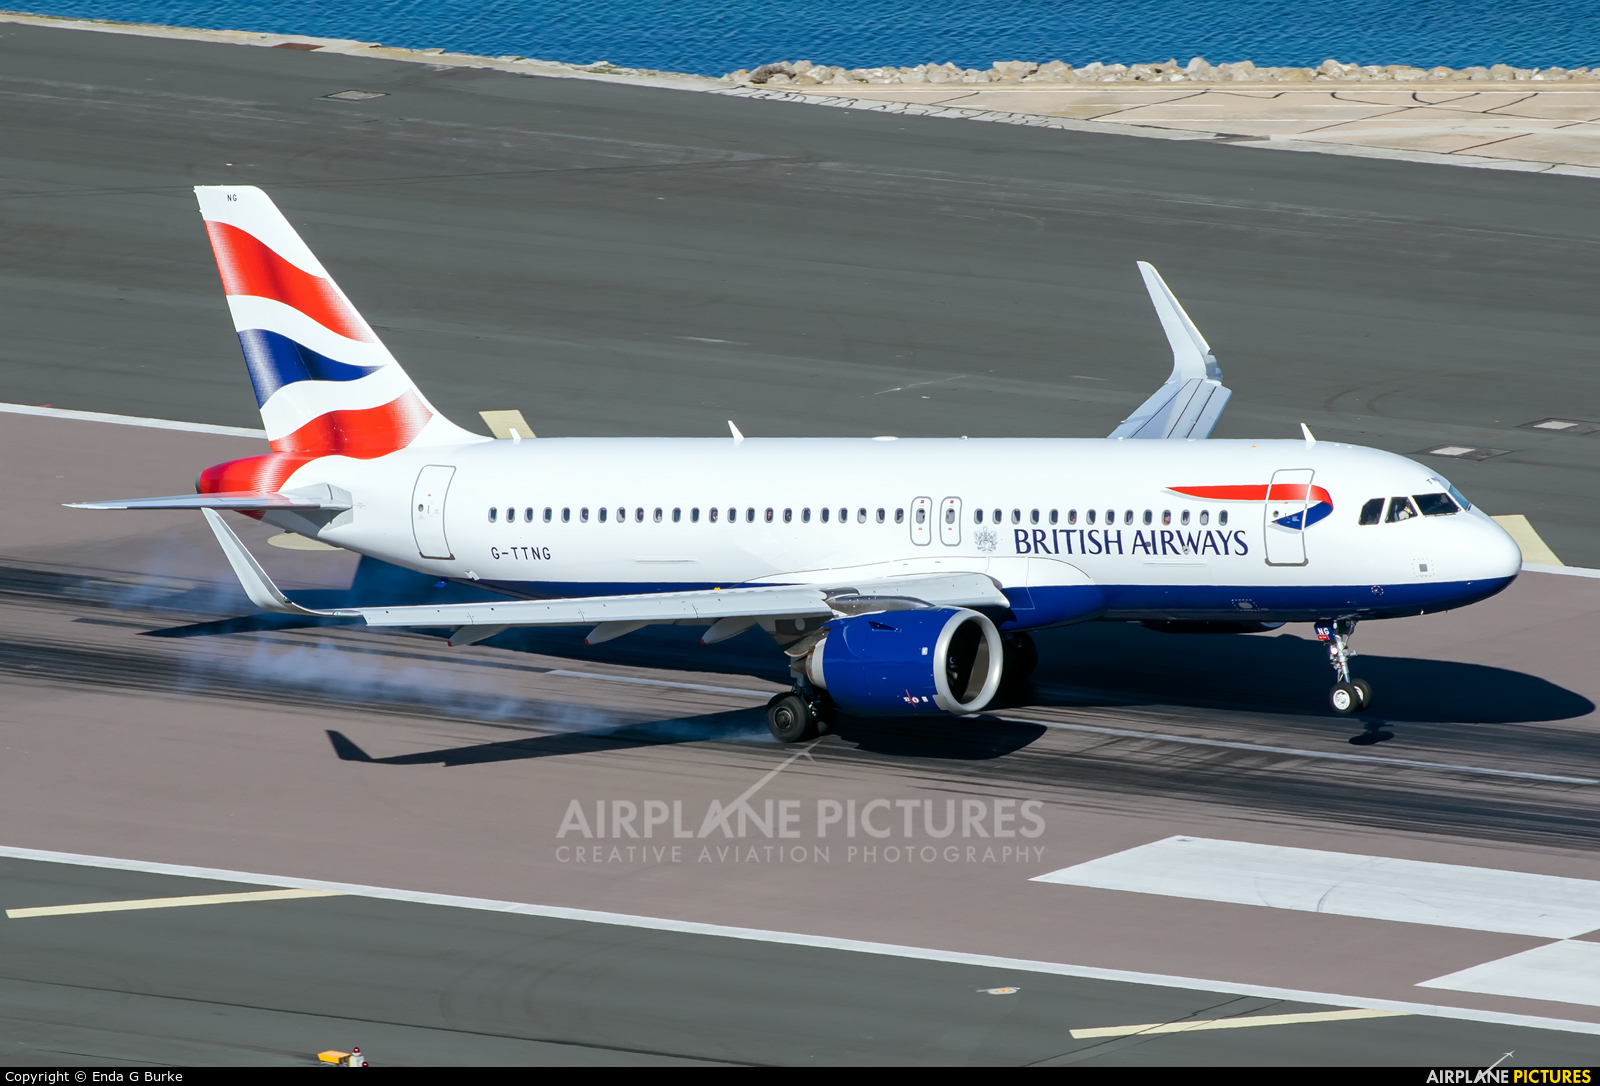 British Airways G-TTNG aircraft at Gibraltar